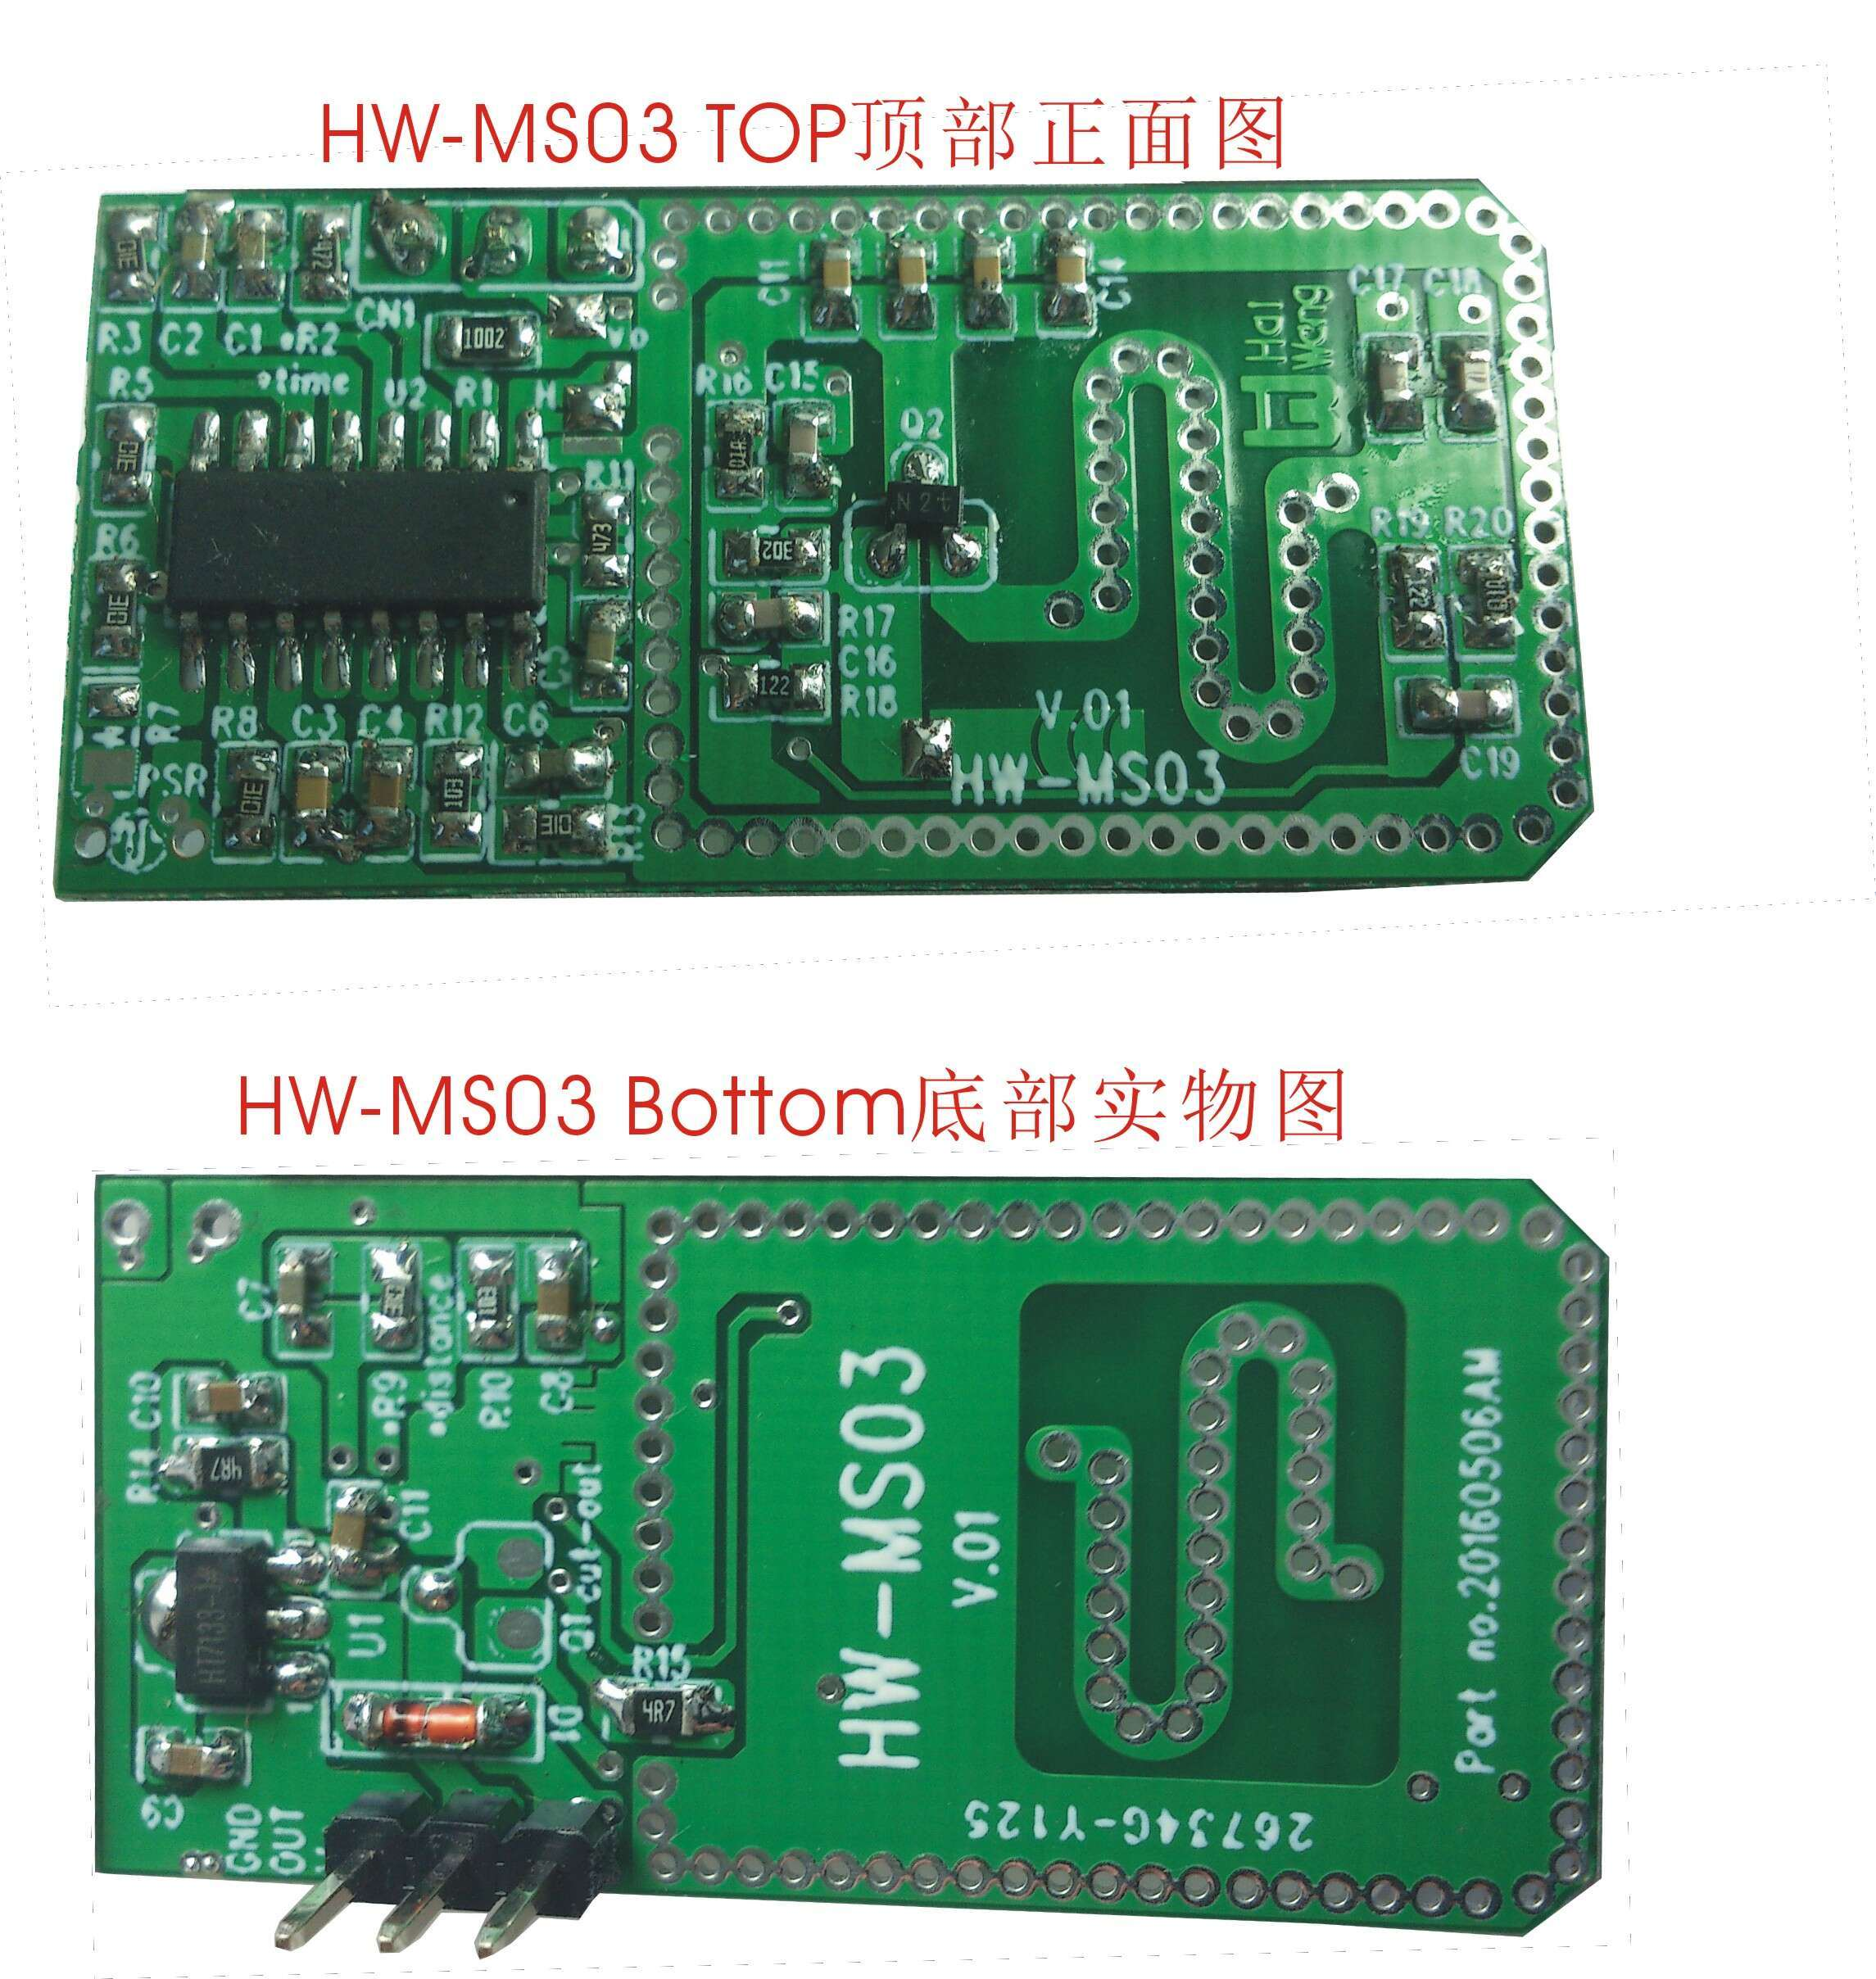 New Model Microwave Radar Sensor Module for Lighting (HW-MS03)